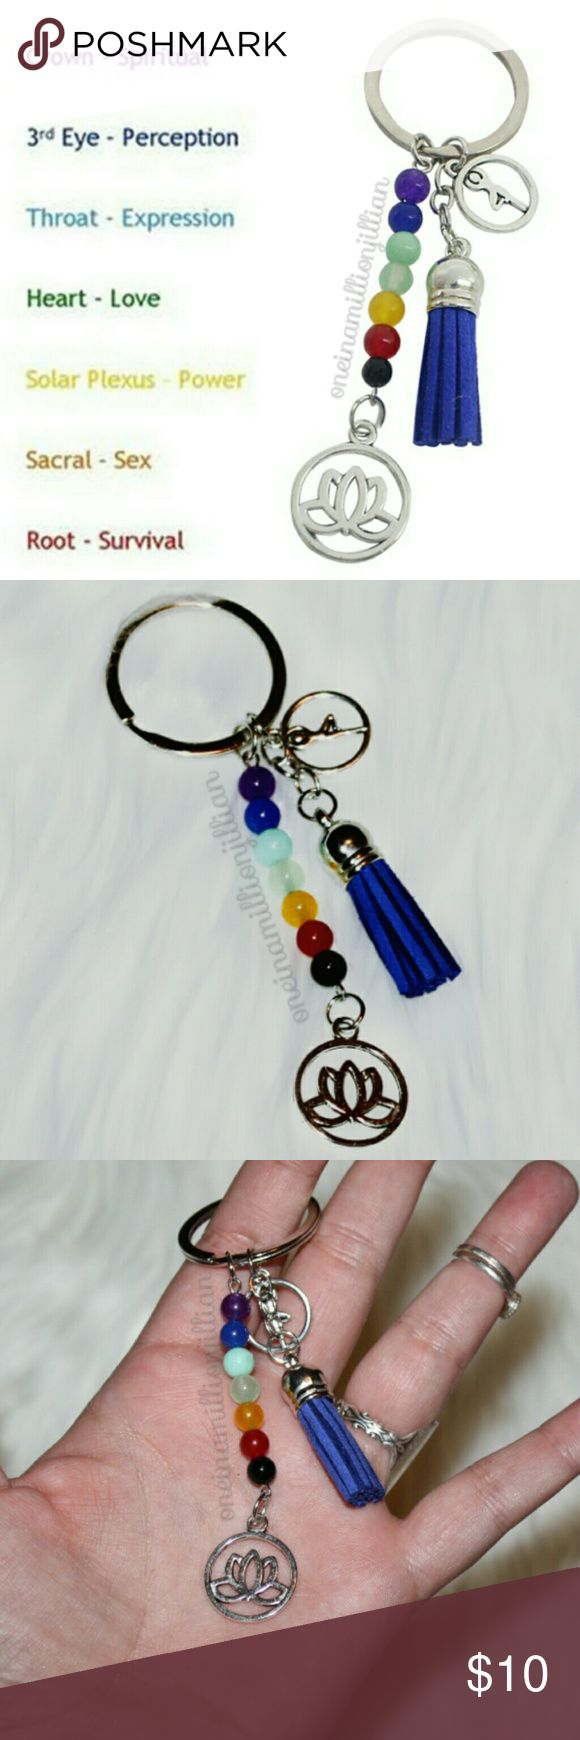 7 Chakras/Lotus Keychain New - Never Used  Features: ◇ 7 stone beads (1 for each chakra color) ◇ Lotus & Yoga charm ◇ Blue suede-like tassel ◇ Silvertone keyring  Chakra symbol meaning is all about connectivity. These emblems come from ancient Hindu tradition which is steeped in the knowledge that nothing is separate. Pull on one thread, it effects the entire fabric of life.  Check my page for more great items & discounts. #oneinamillionjillian Accessories Key & Card Holders